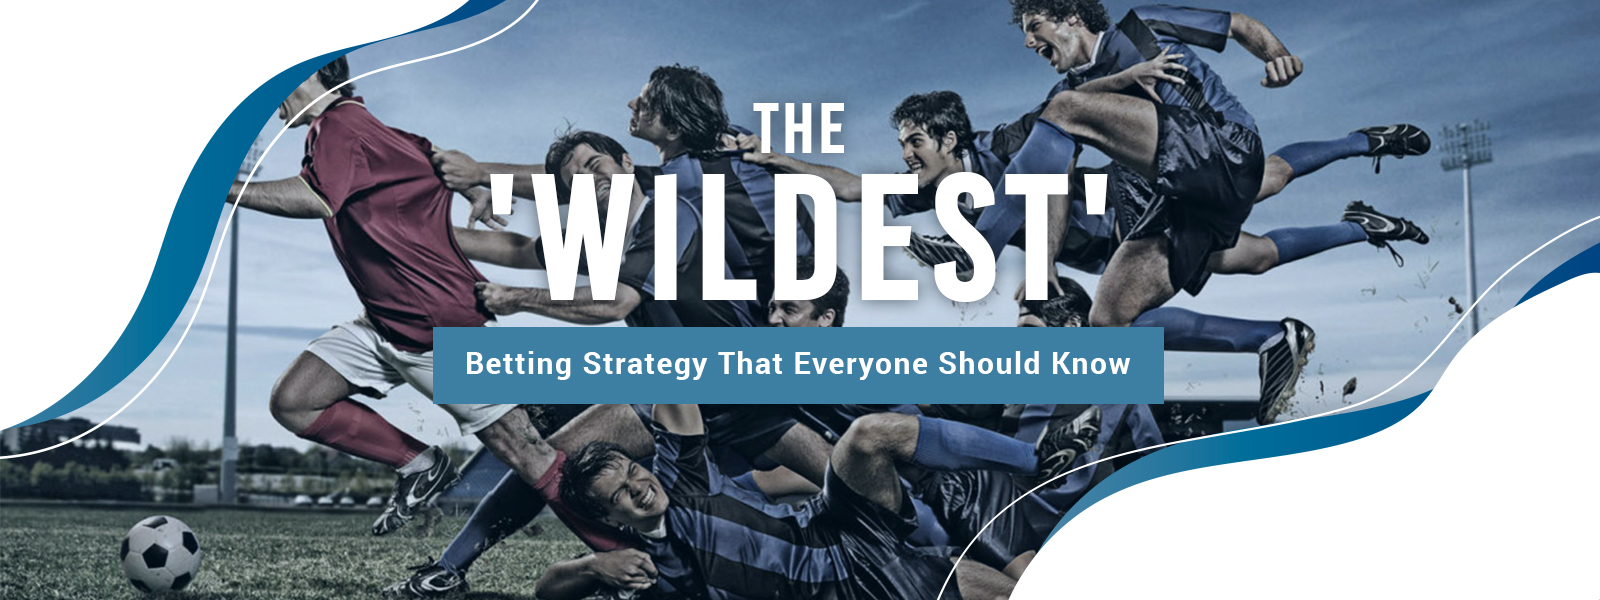 The 'Wildest' Betting Strategy That Everyone Should Know